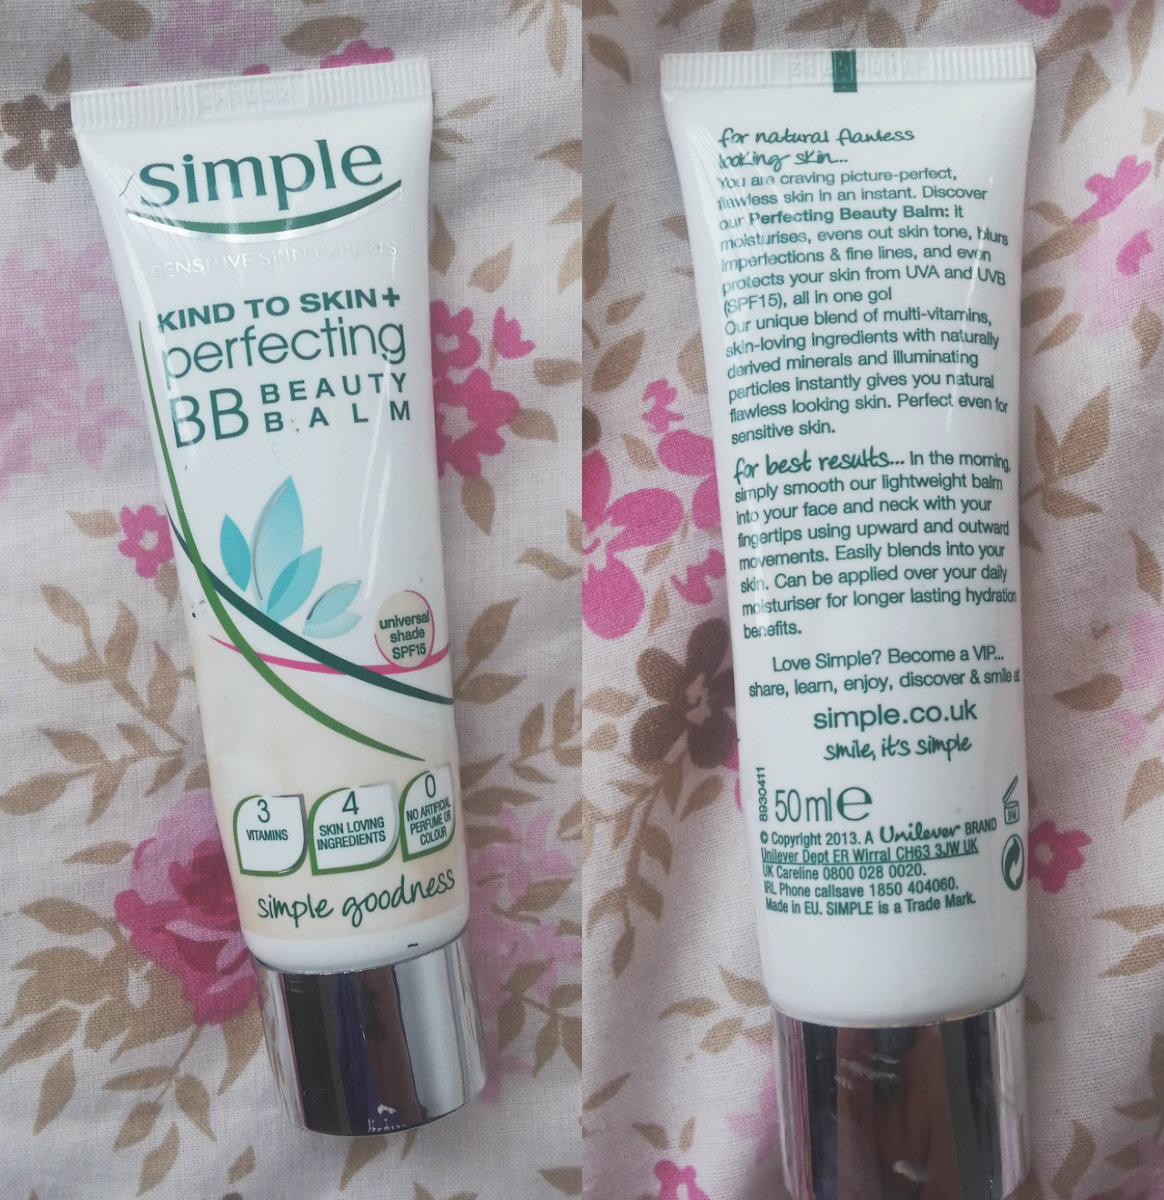 Simple BB Cream